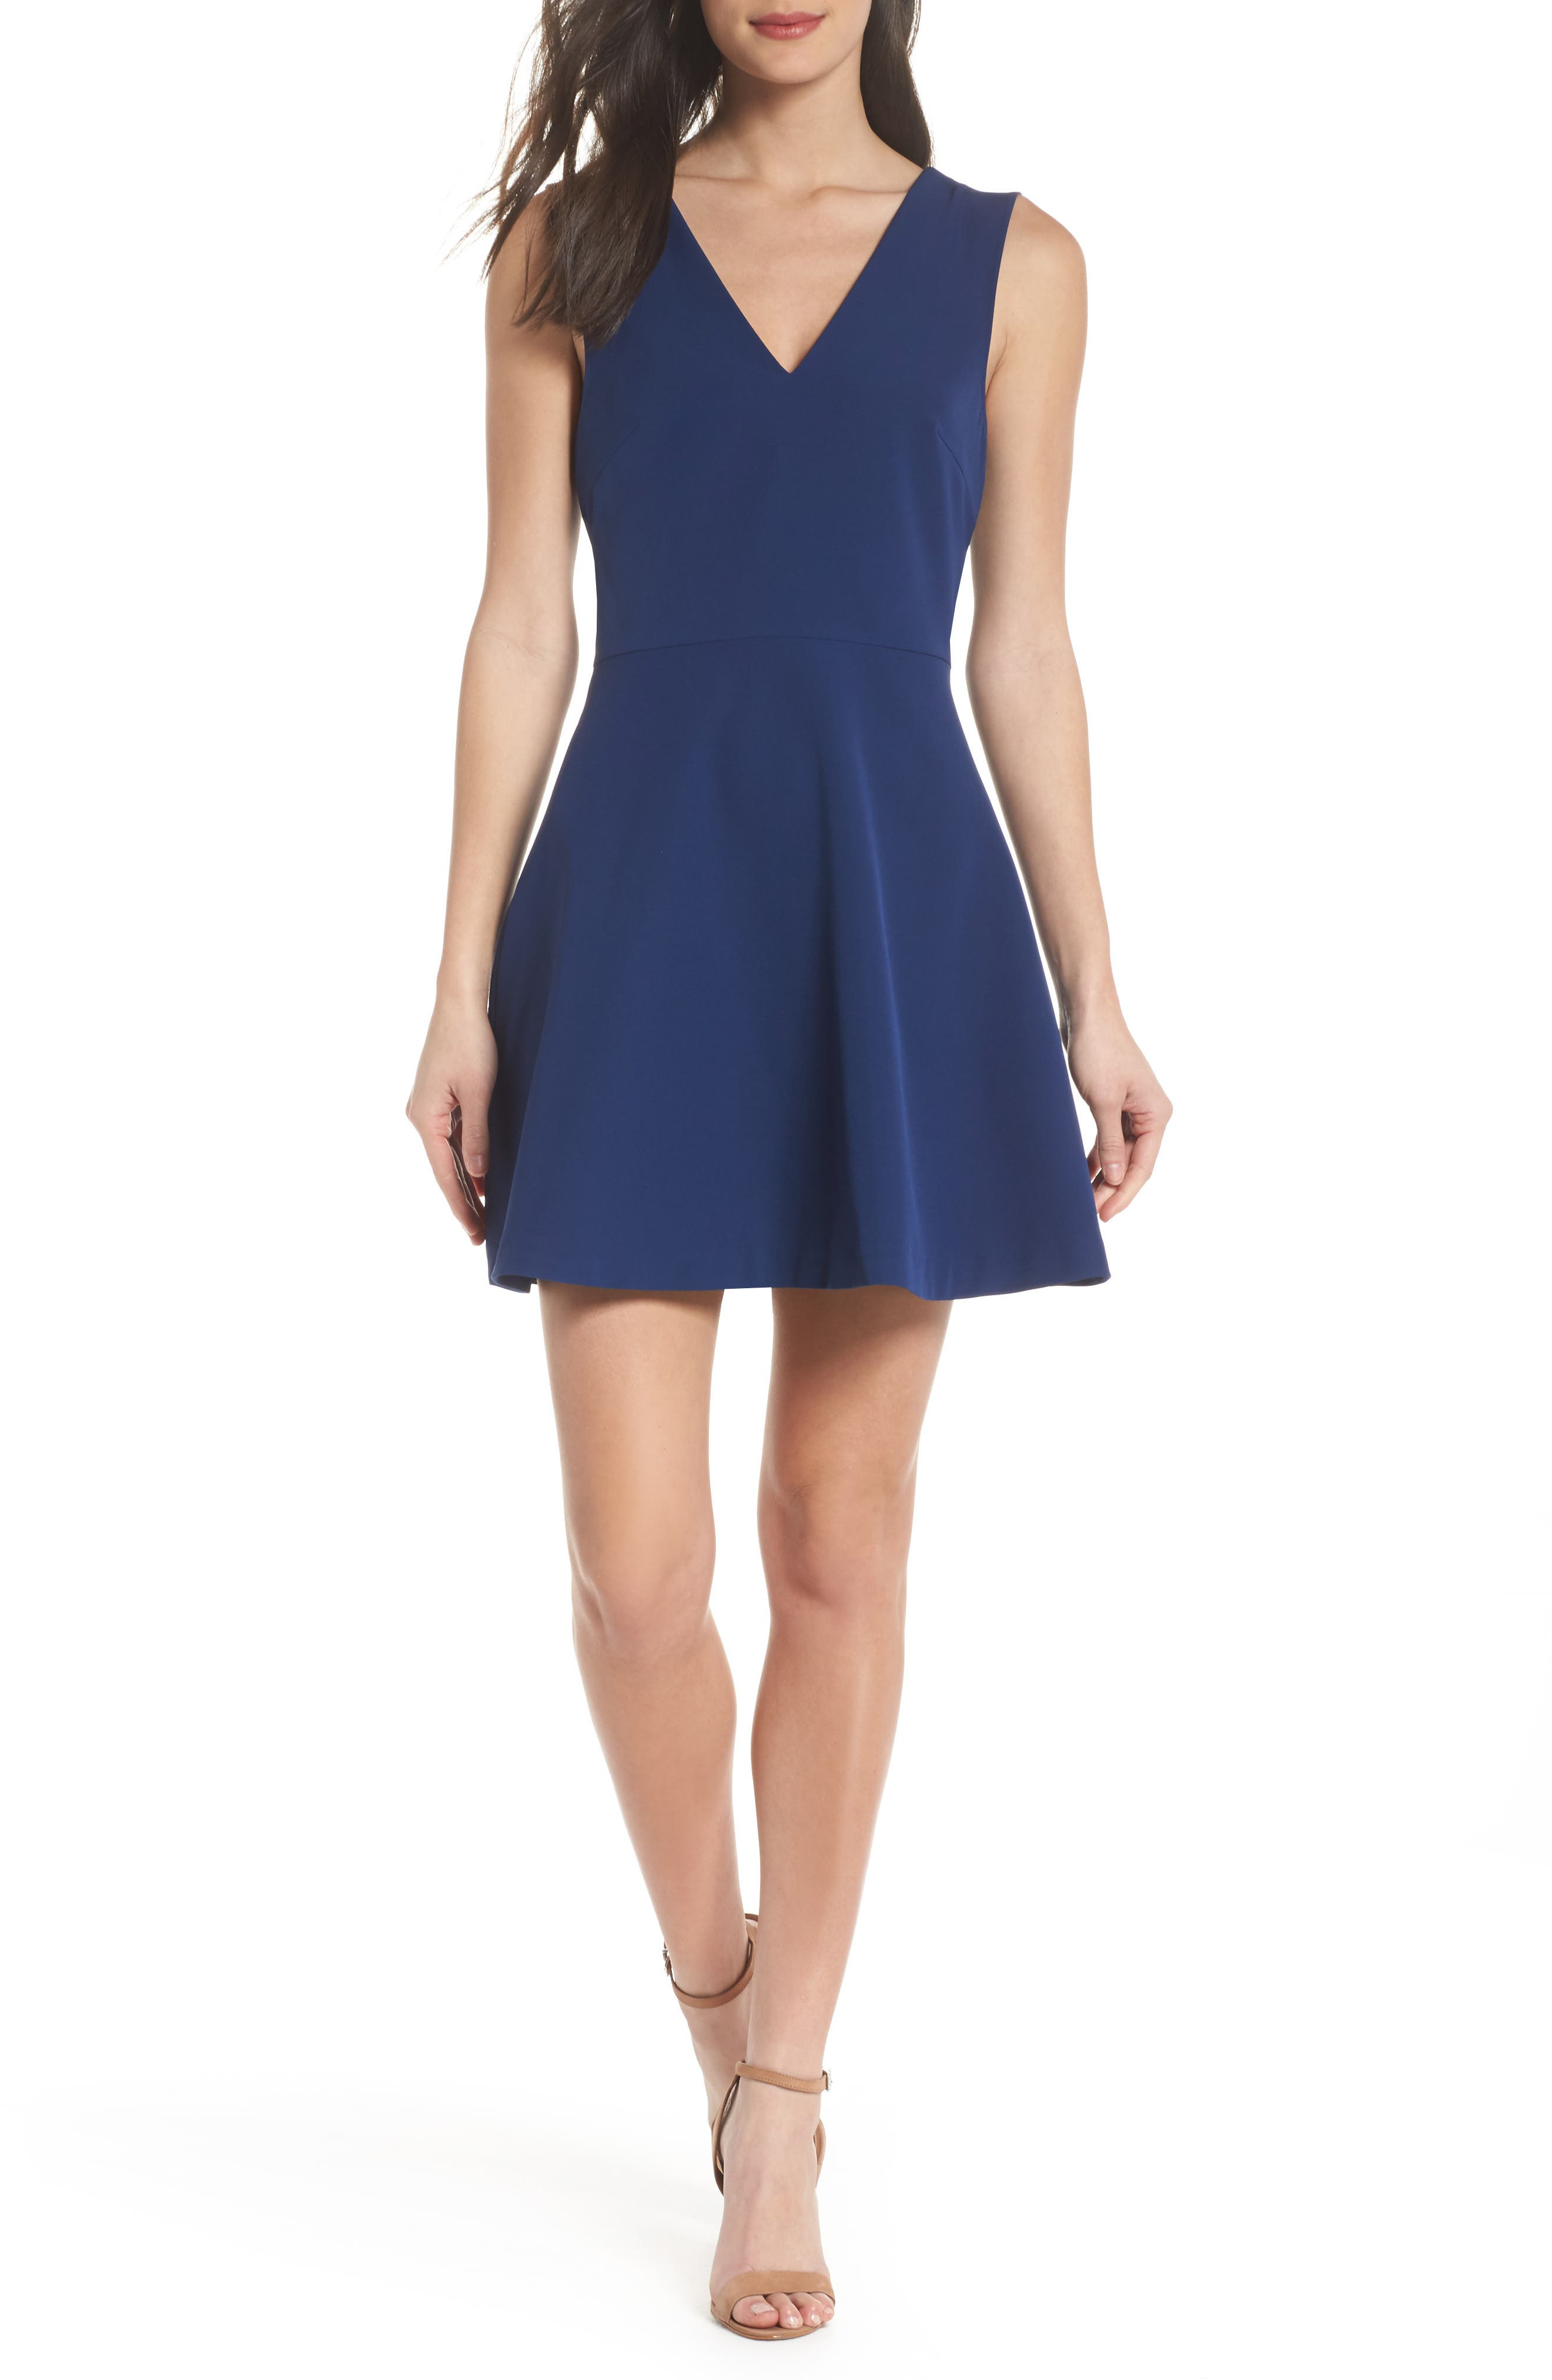 Alternate Image 1 Selected - Felicity & Coco Bianca Back Cutout Fit & Flare Dress (Regular & Petite) (Nordstrom Exclusive)